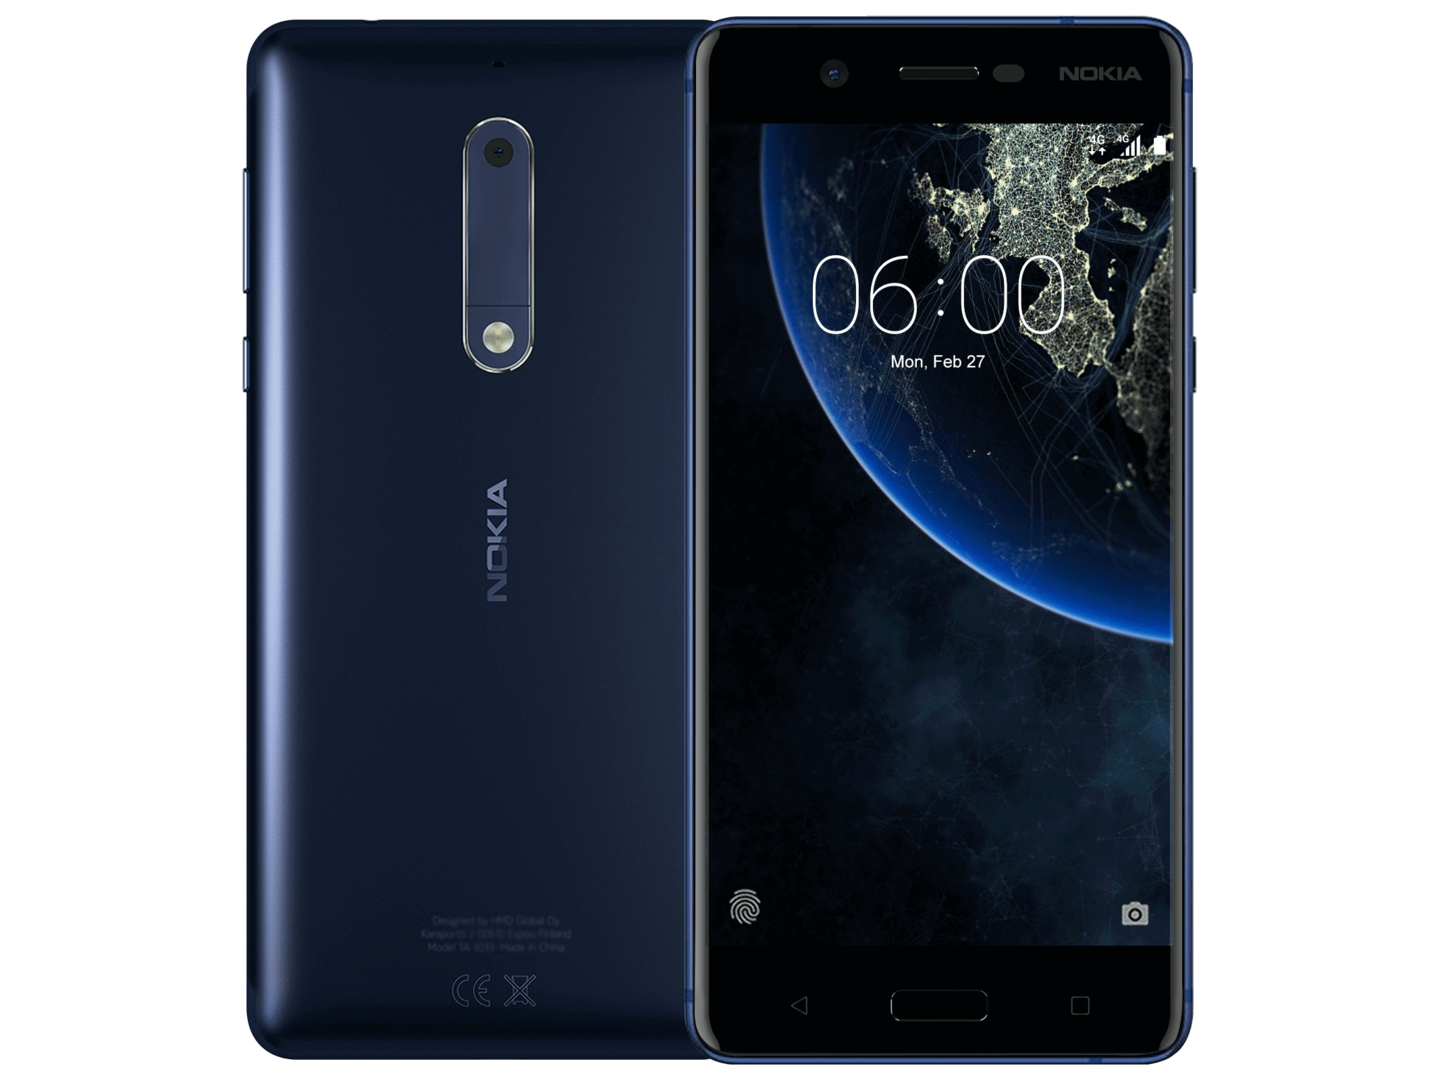 Nokia 5 And 6 Start Receiving Android 8.1 Oreo Updates